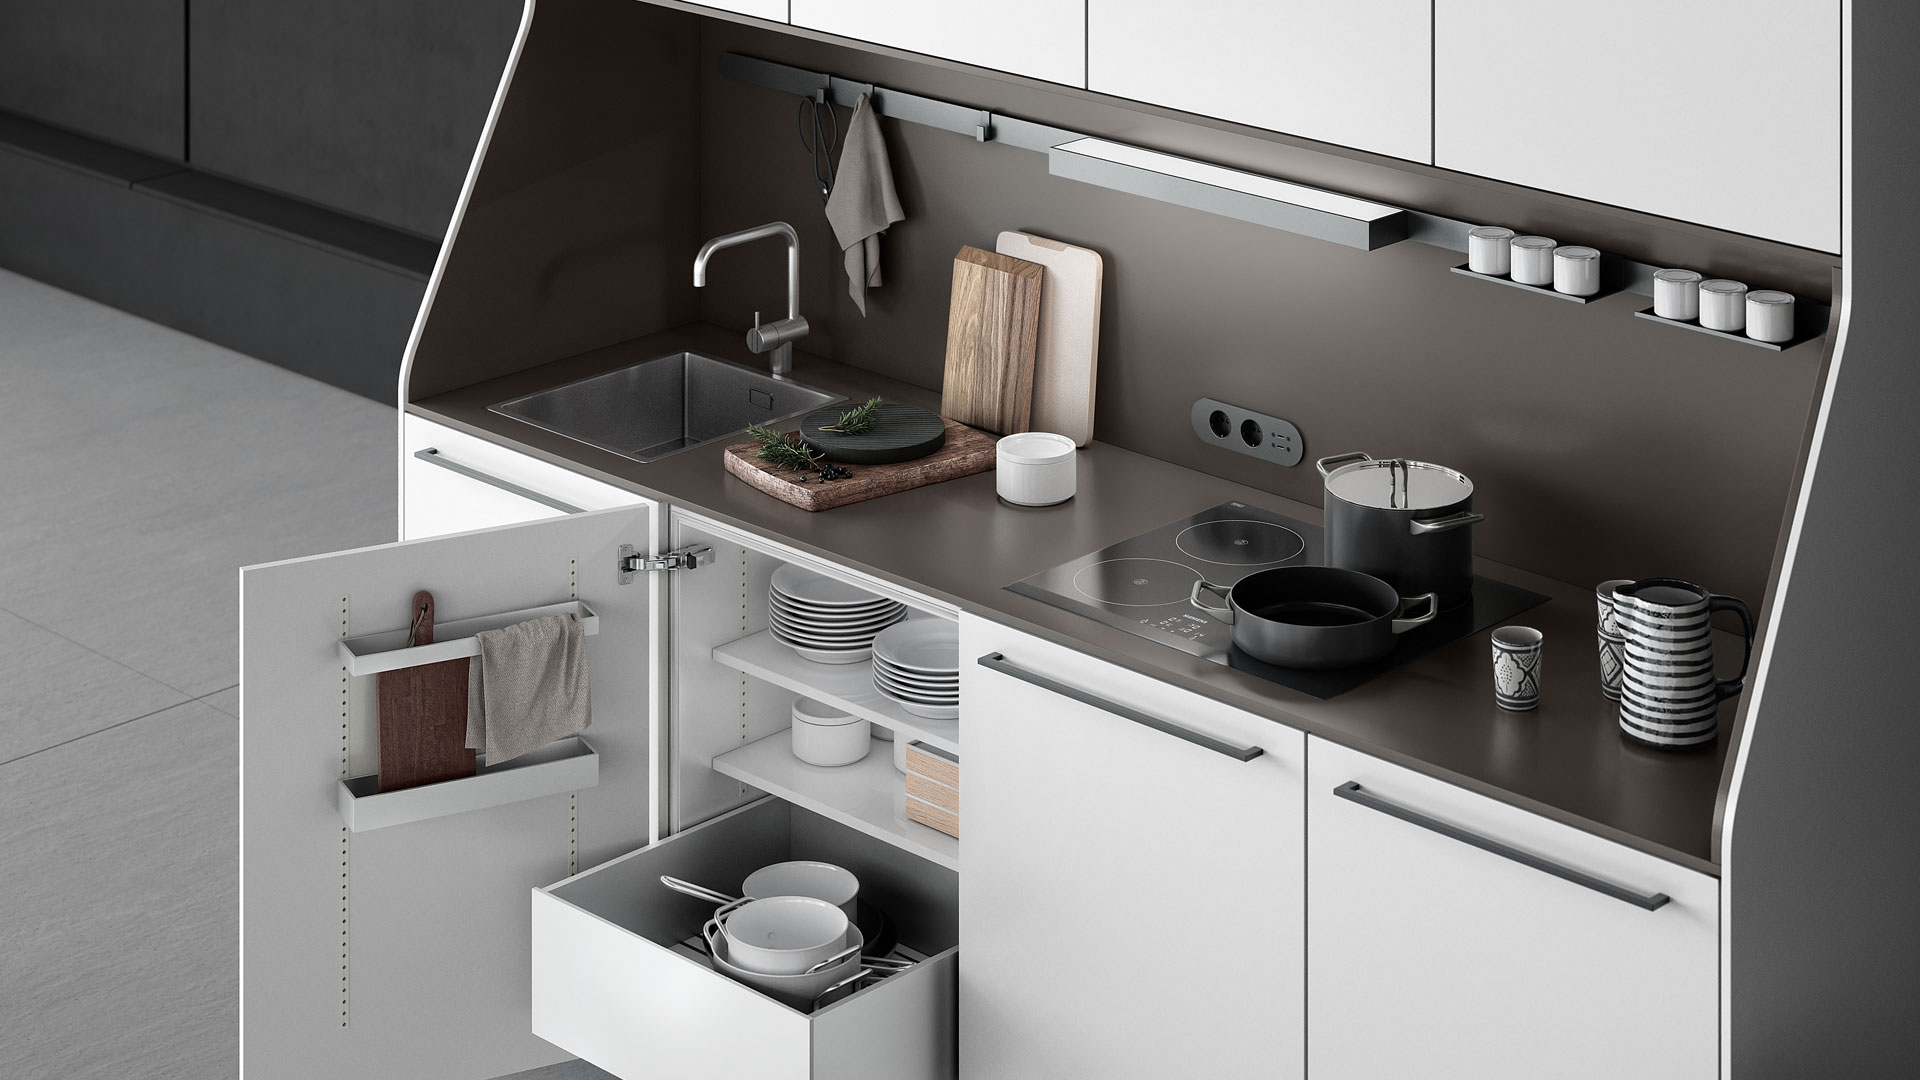 SieMatic-kitchen-urban-06_04.jpg